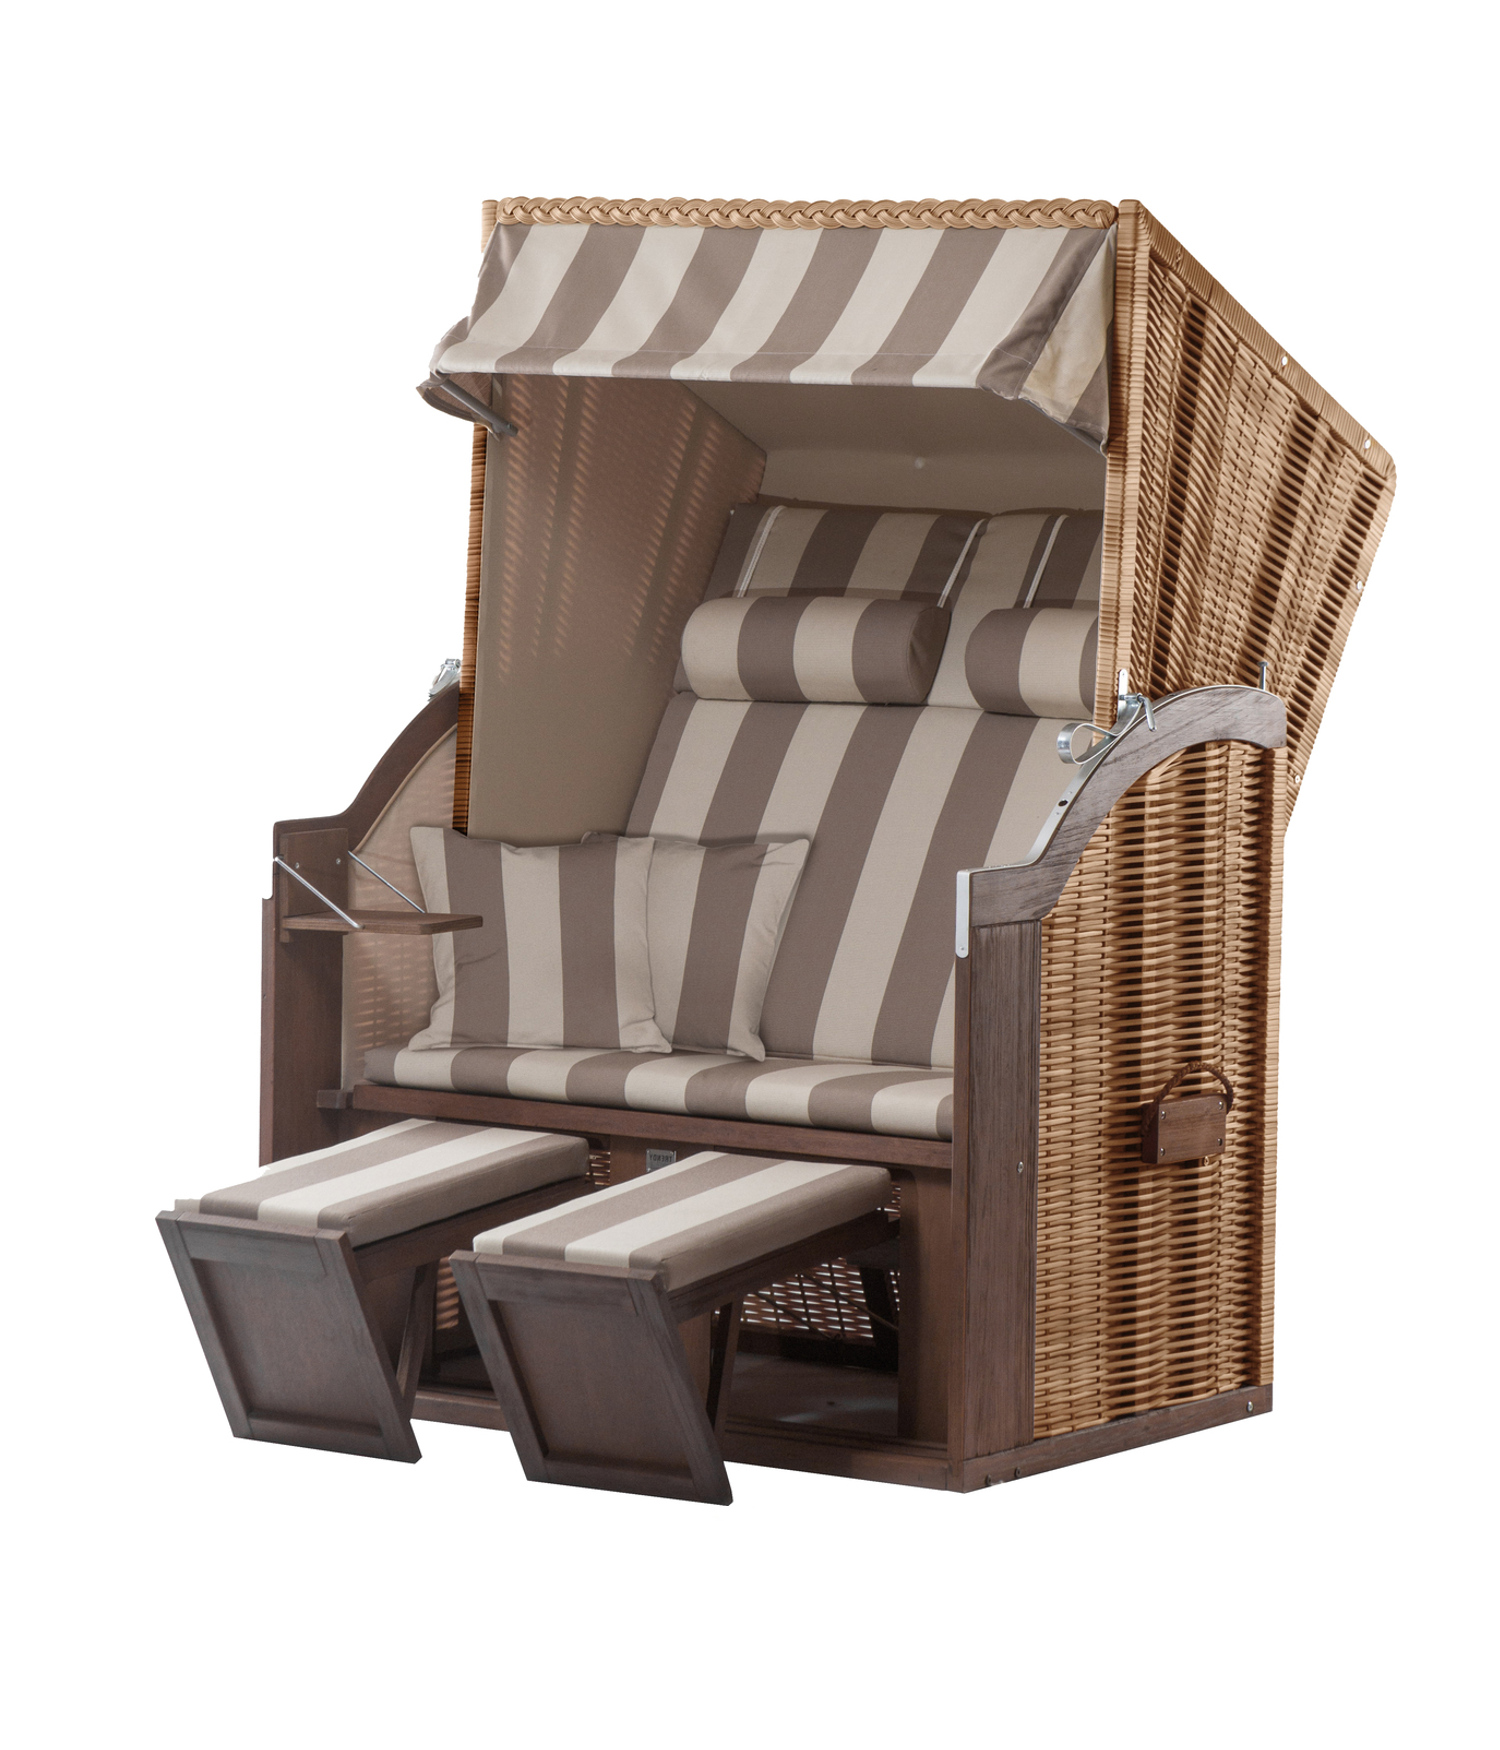 Affordable Strandkorb Devries Trendy Twin Hiddensee Dessin Polyrattan Braun With De Vries Angebot